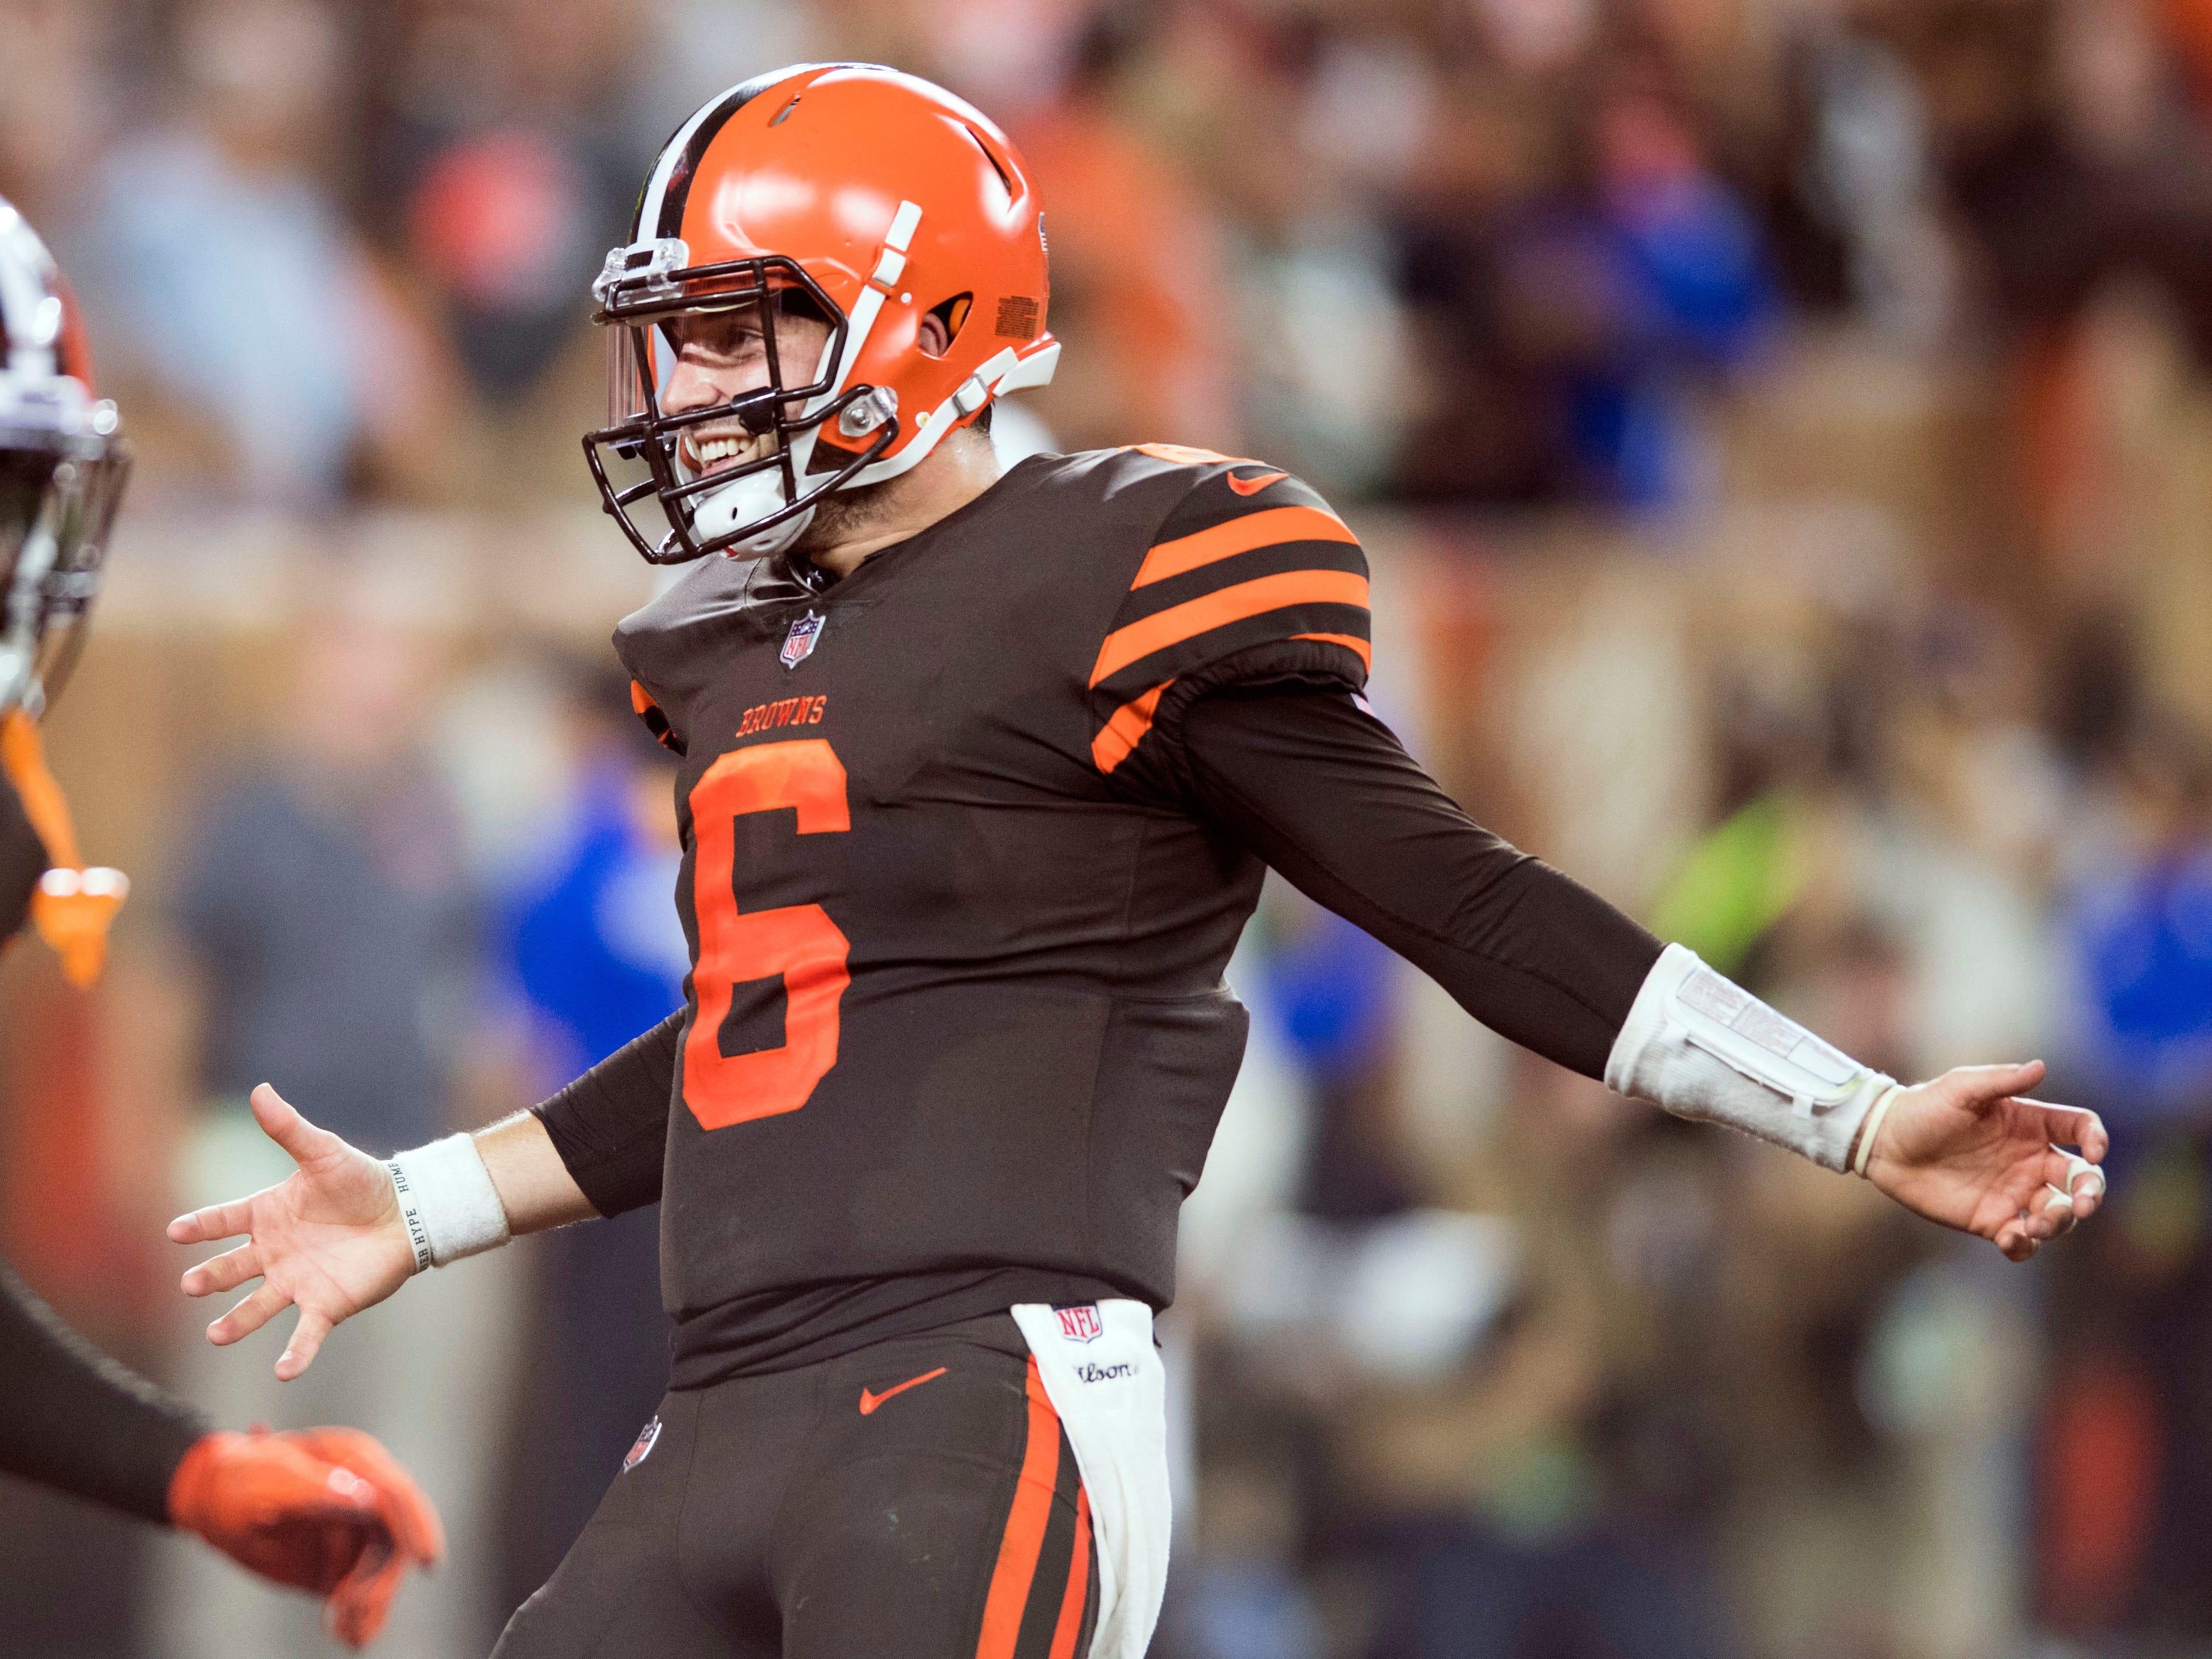 Cleveland Browns quarterback Baker Mayfield celebrates after Carlos Hyde scores a touchdown during the second half against the New York Jets at FirstEnergy Stadium.